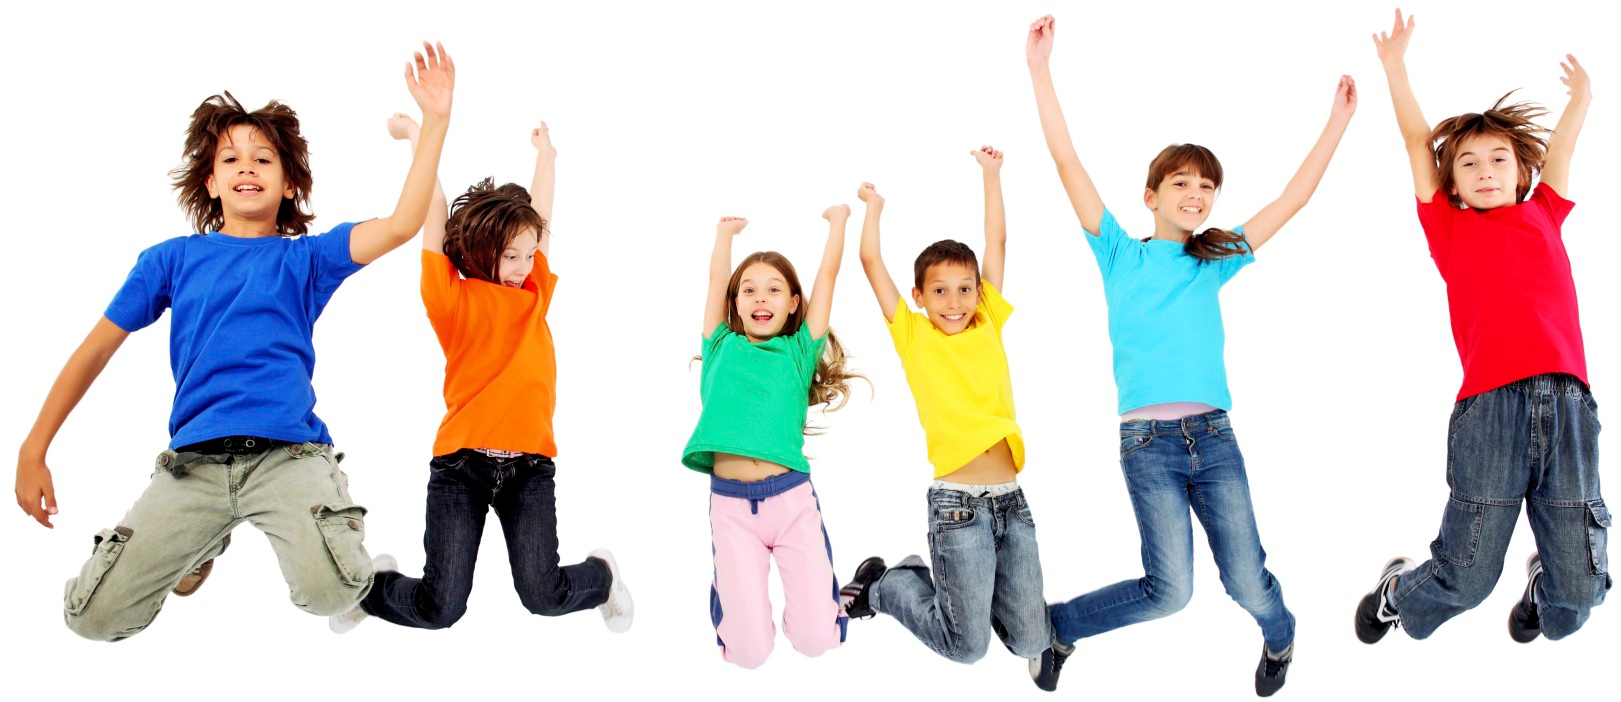 Happy Kids Png image #25075